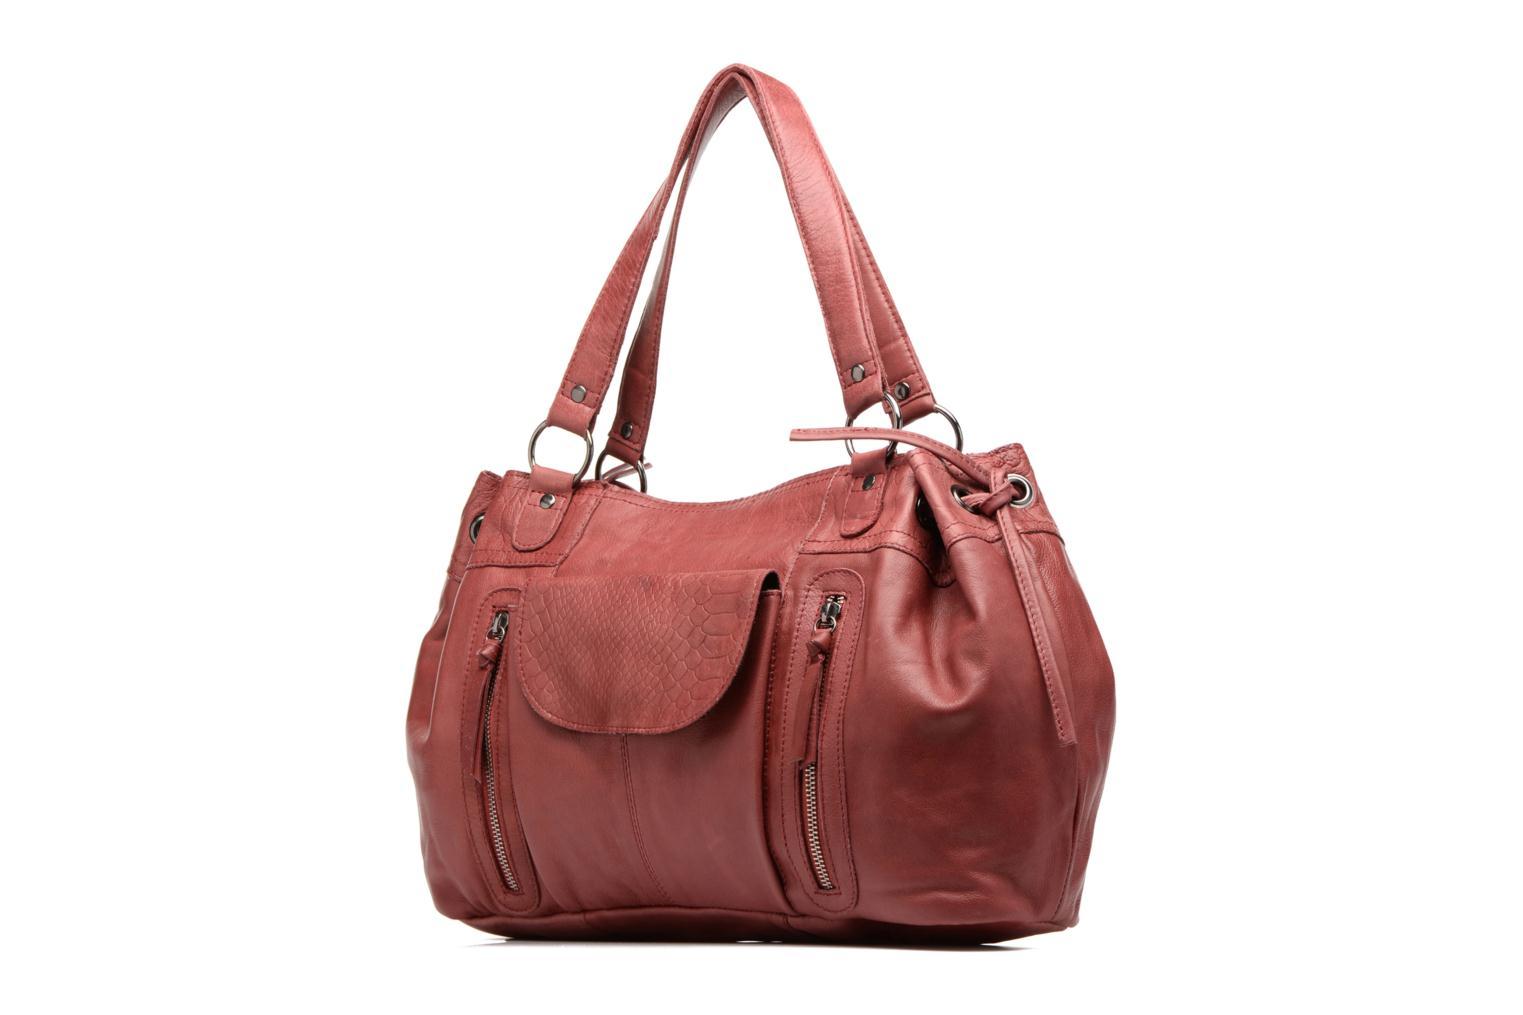 Jihano Leather Bag Port Royale